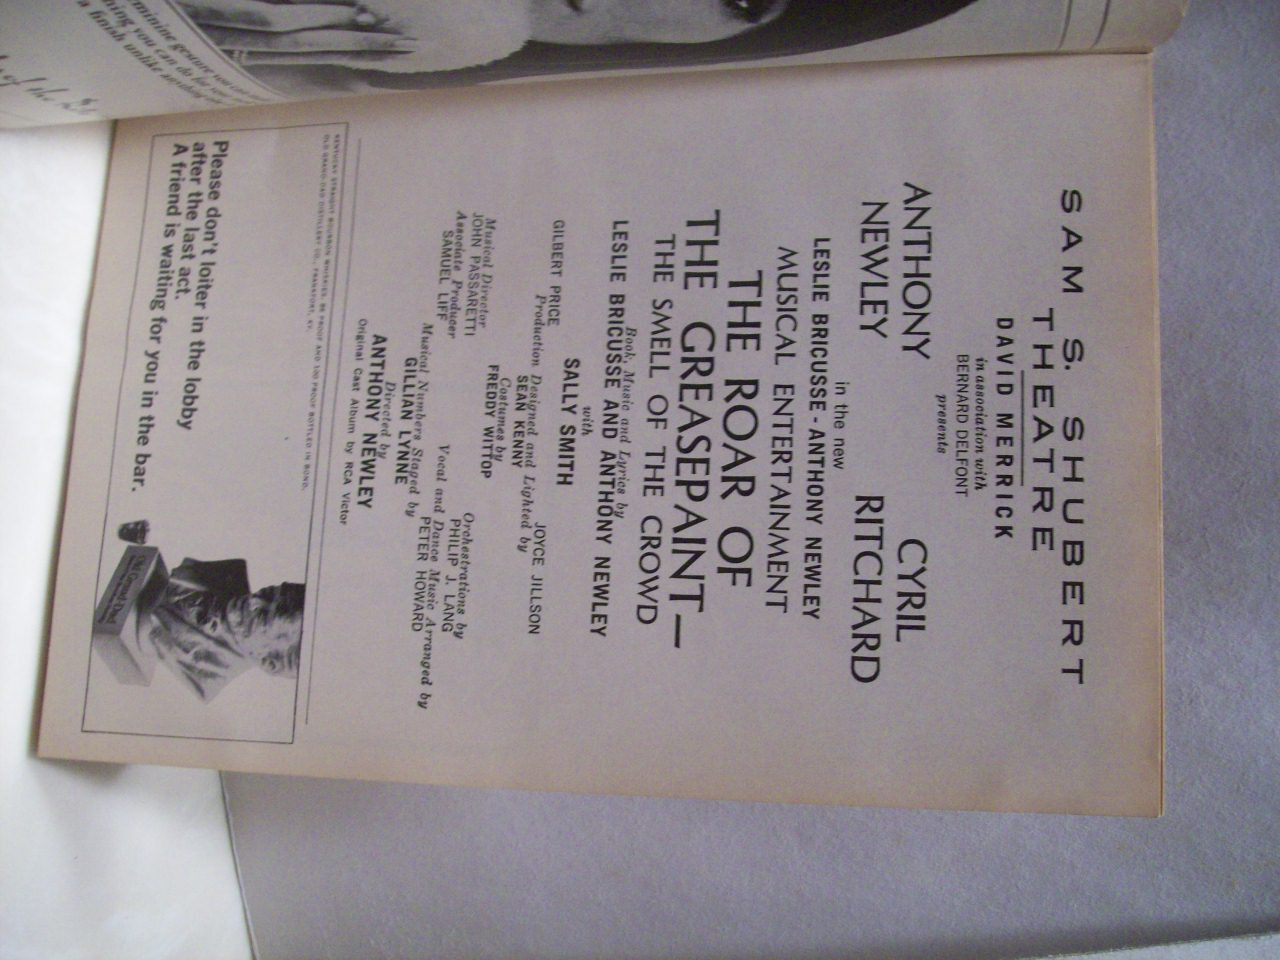 Newley, Anthony Cyril Ritchard Playbill Signed Autograph The Roar Of The Greasepaint - The Smell Of The Crowd 1965